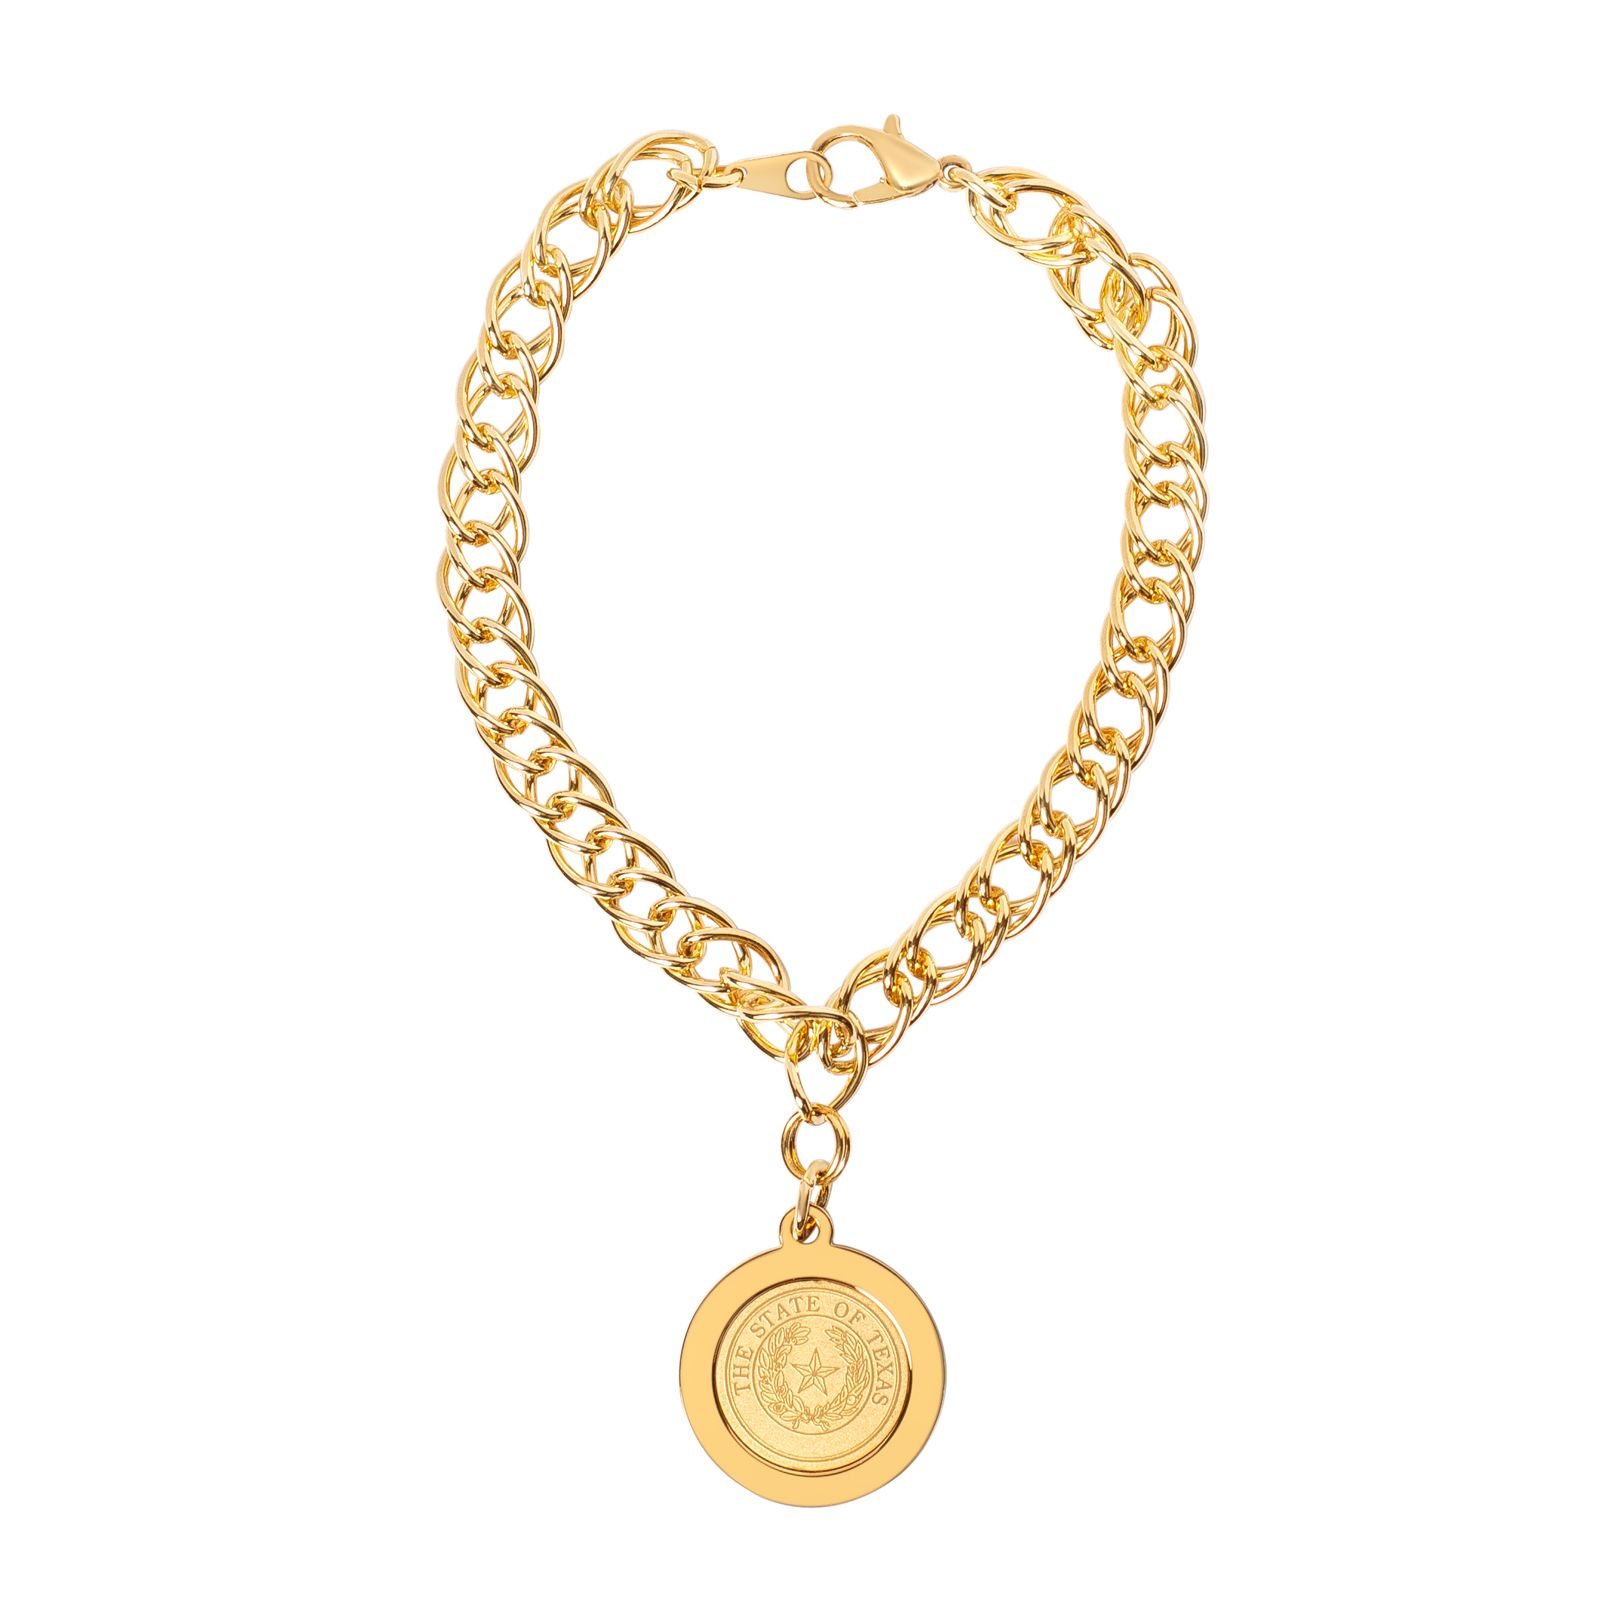 State Seal Gold Plated Charm Bracelet